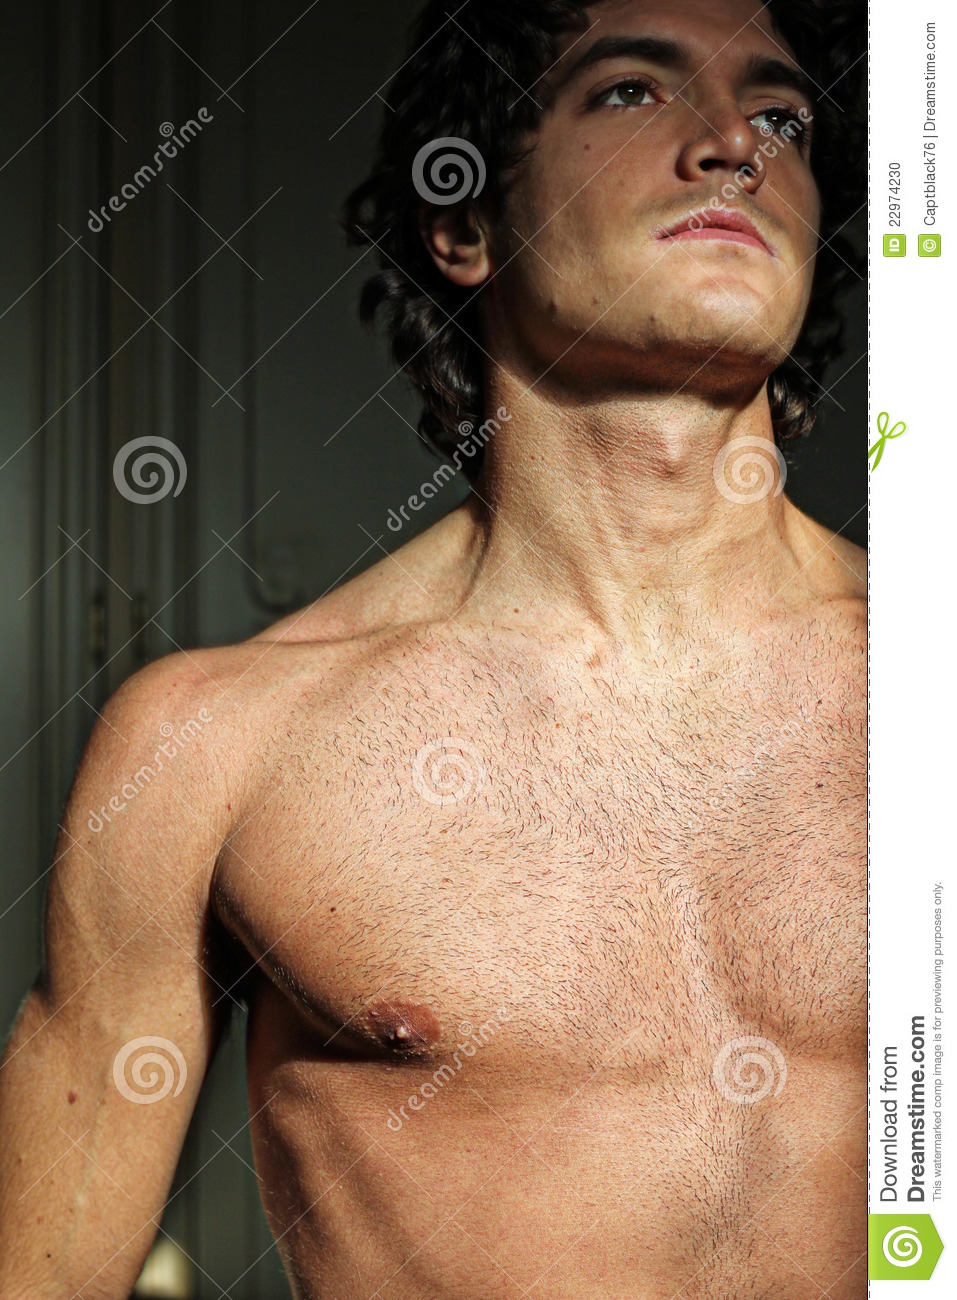 More similar stock images of ` Sexy young man with naked torso `